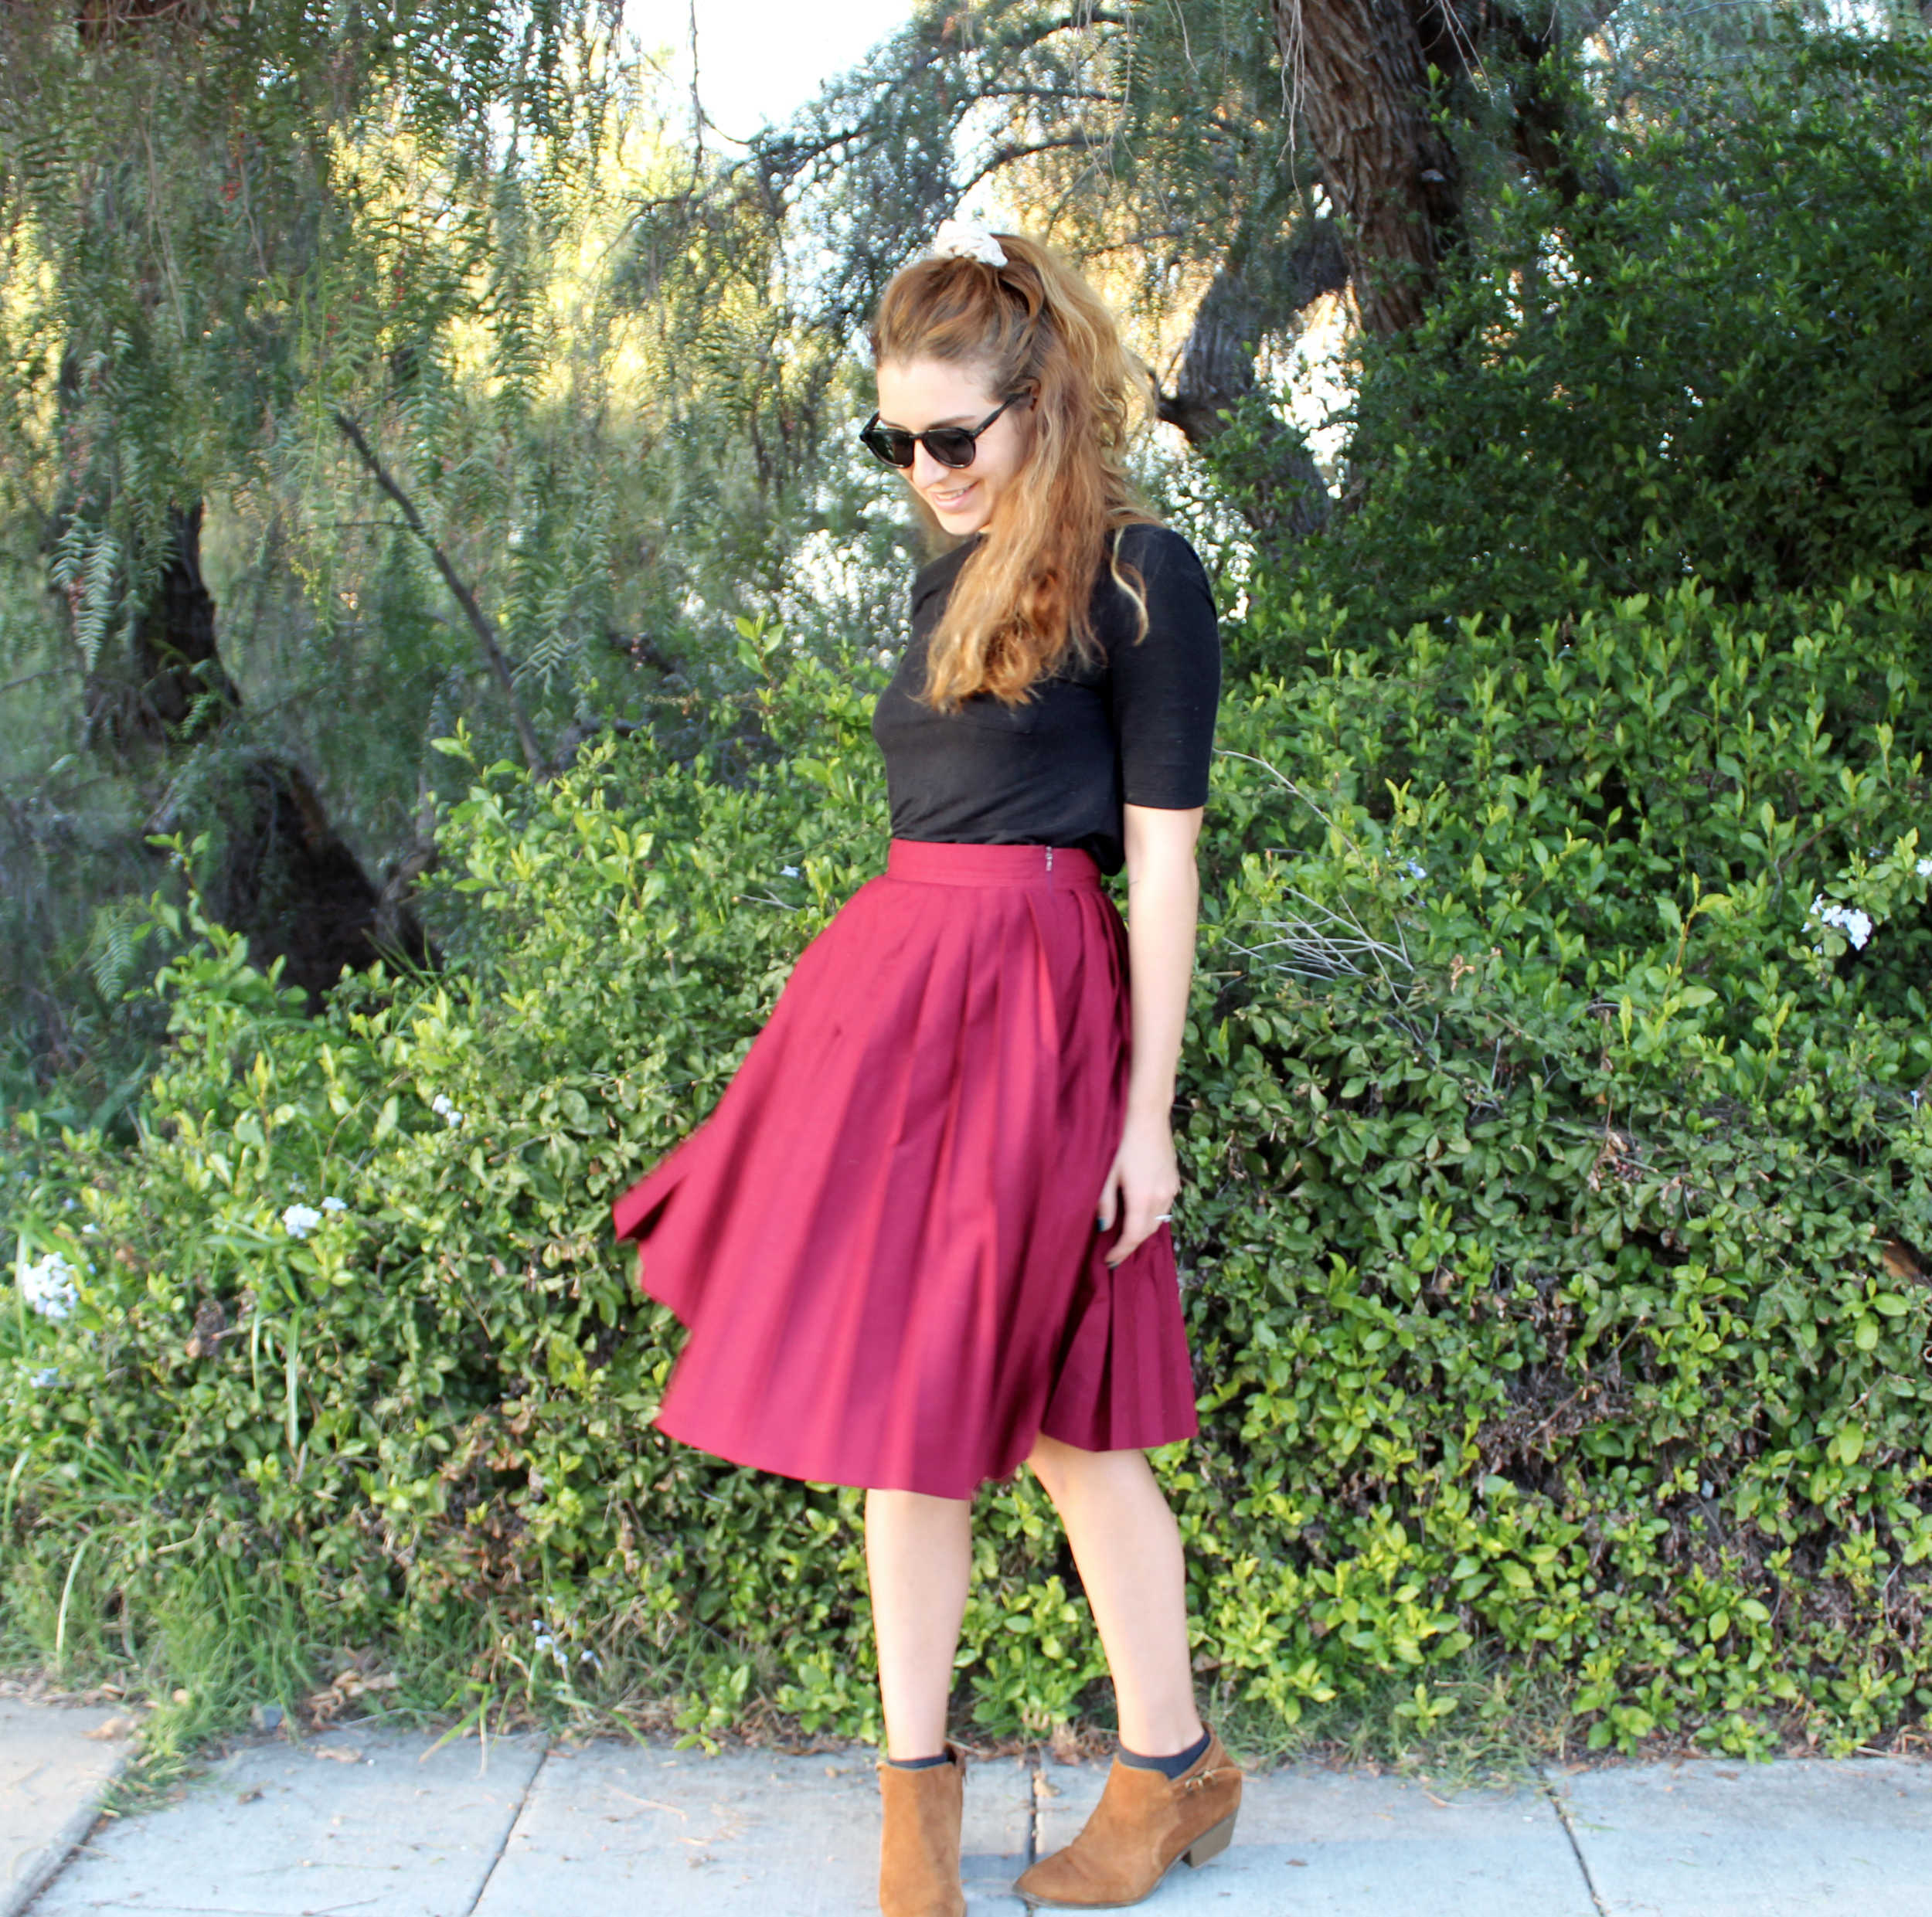 How To Sew Knife Pleats: The Emma Skirt